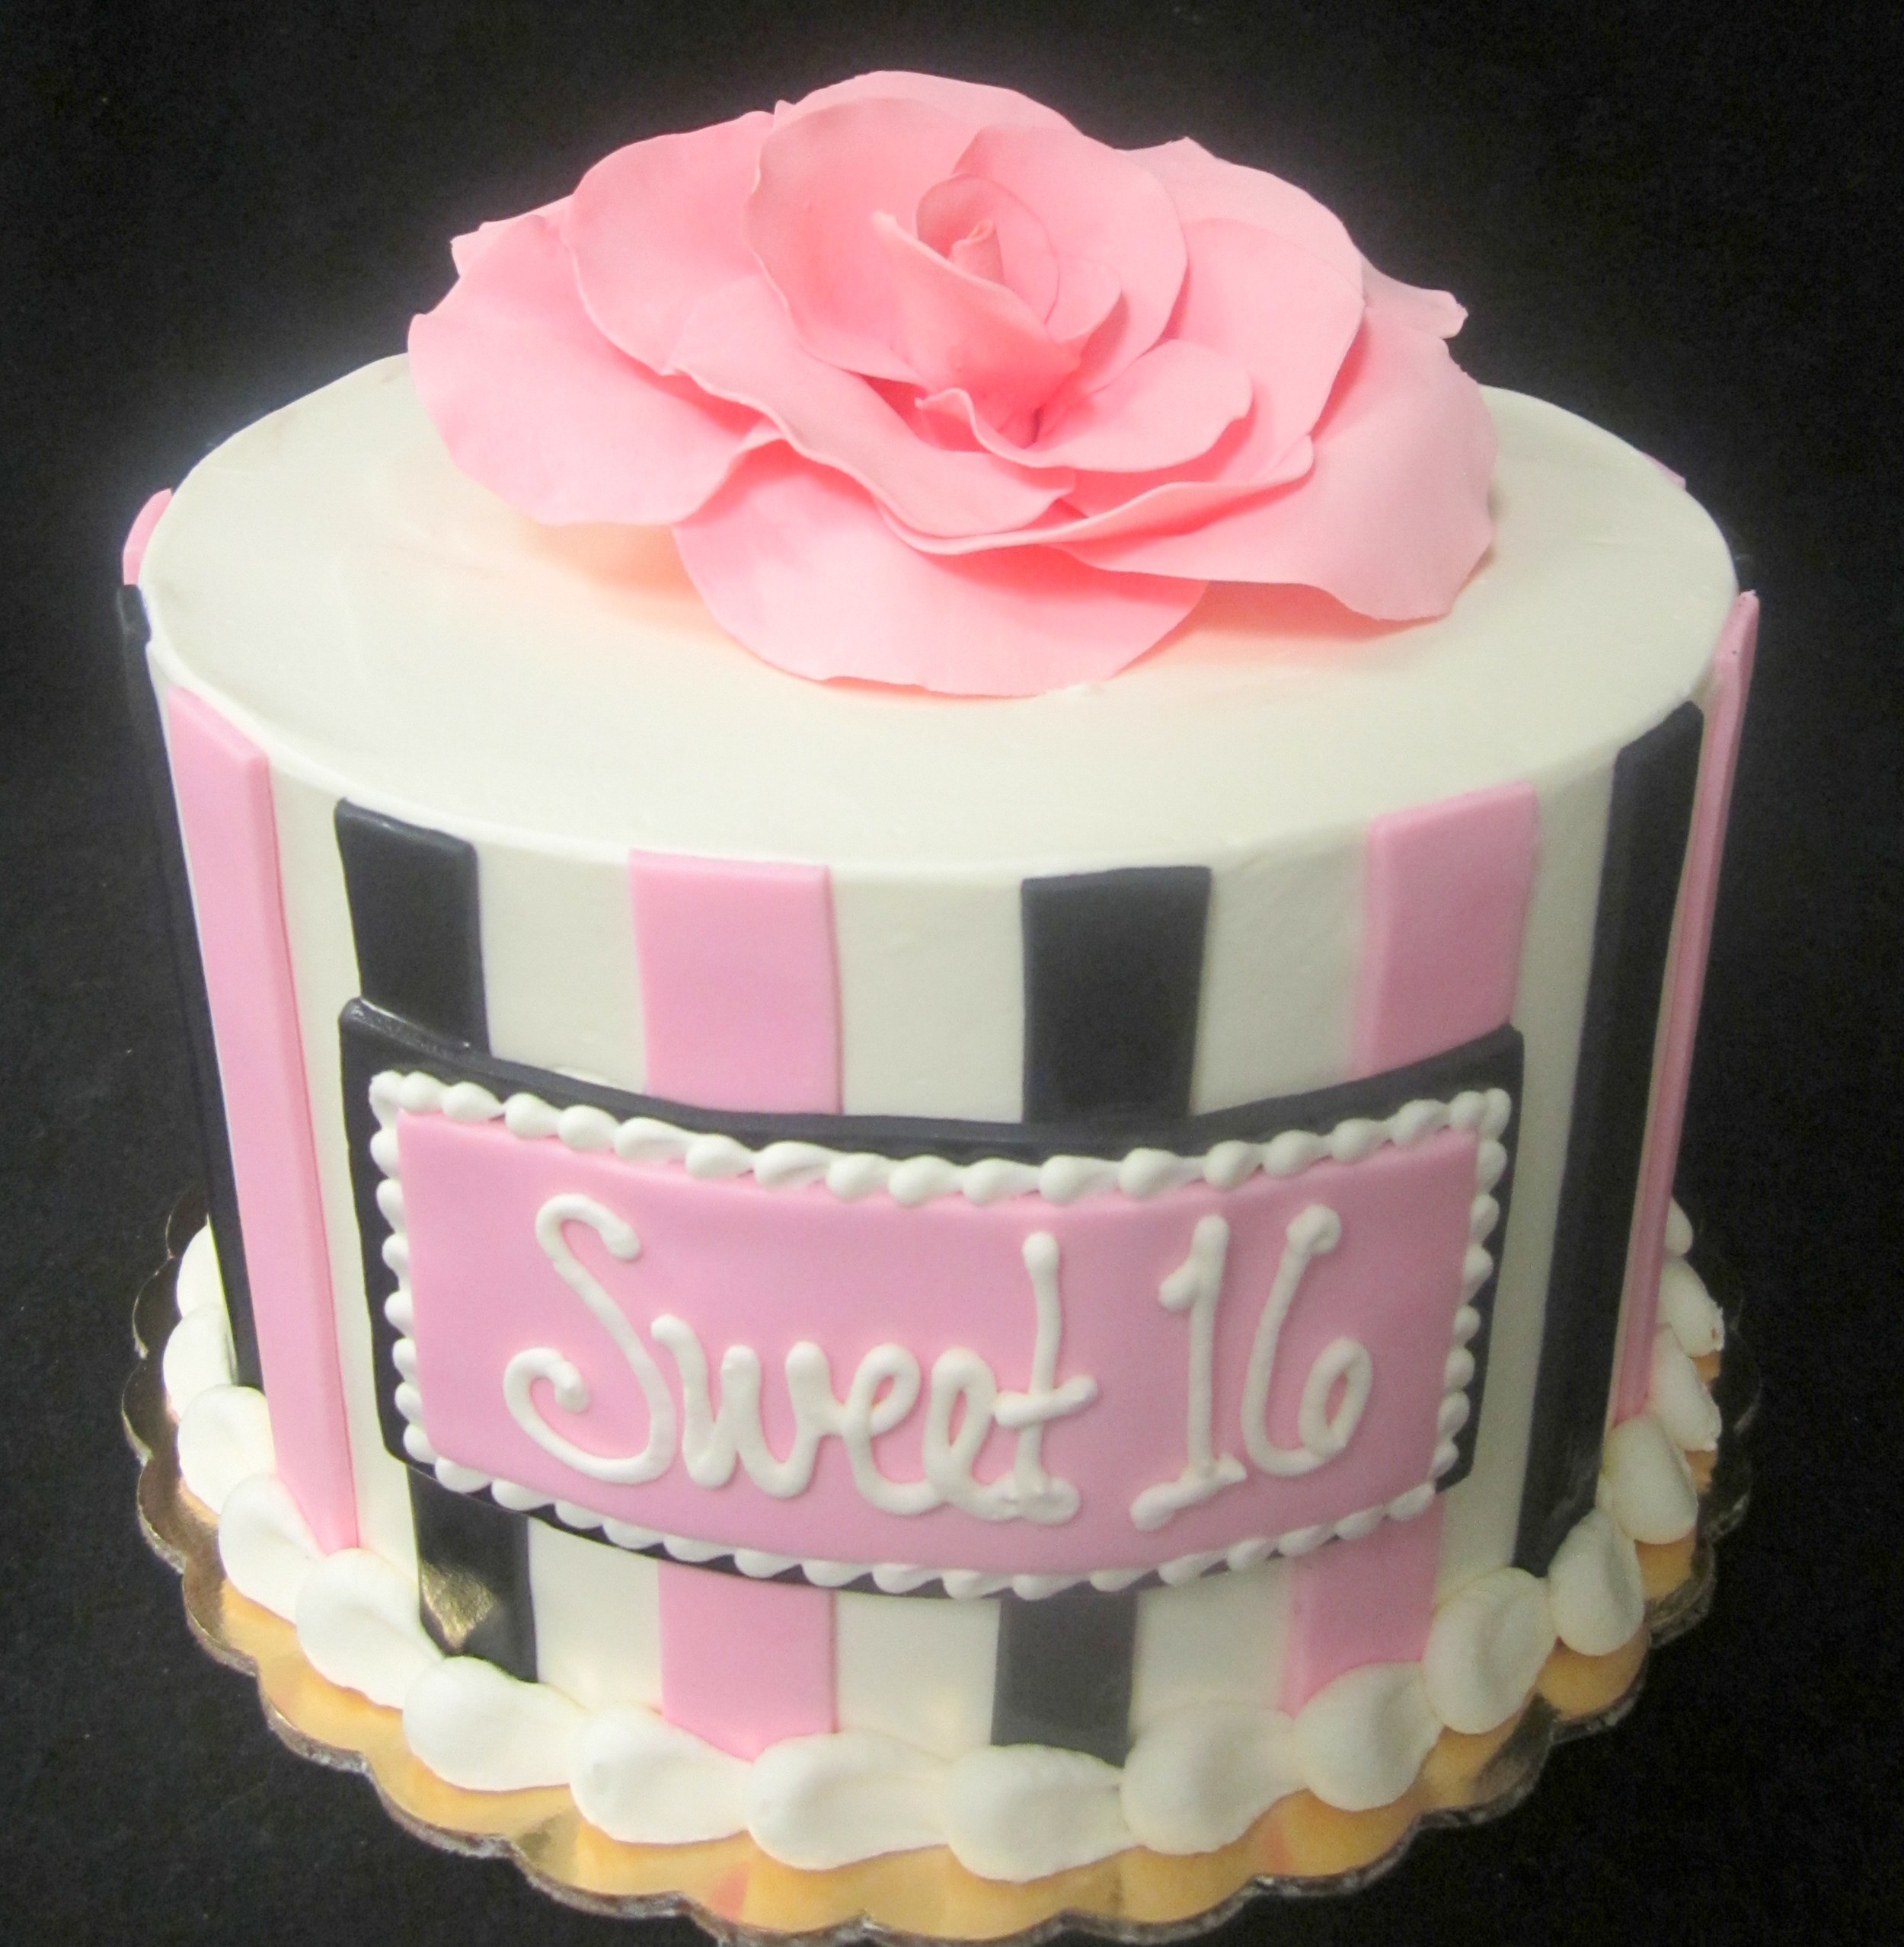 rose and stripes cake.jpg